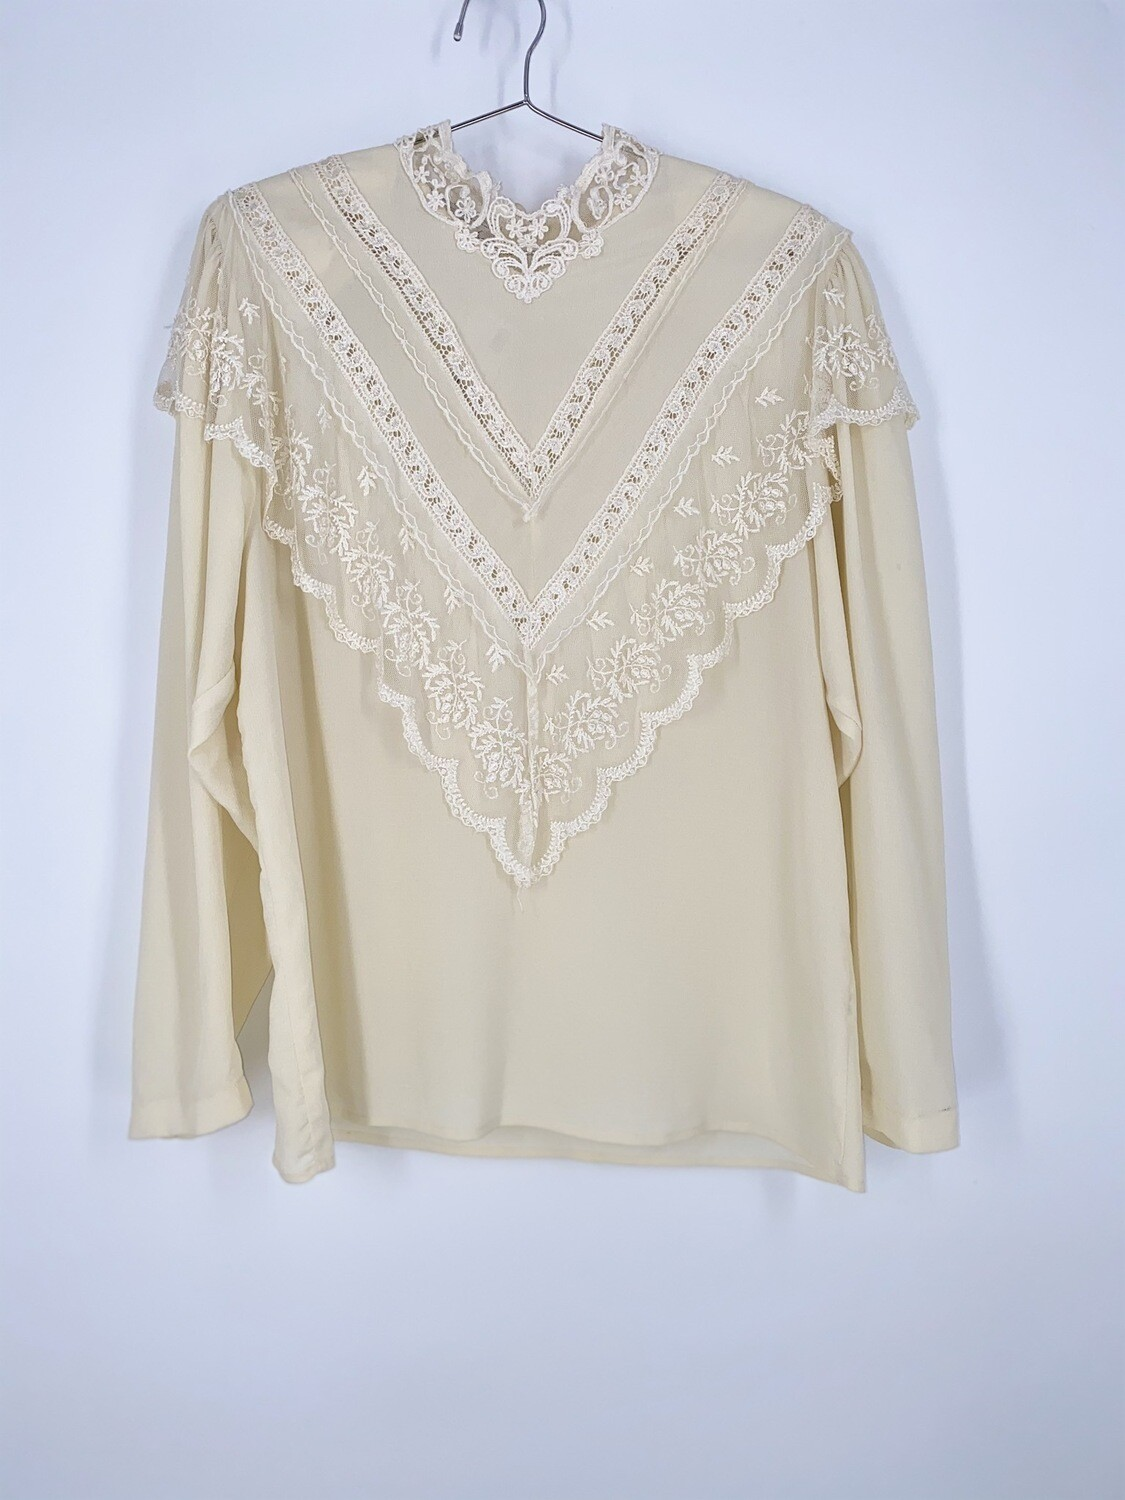 Victorian Style Top Size M